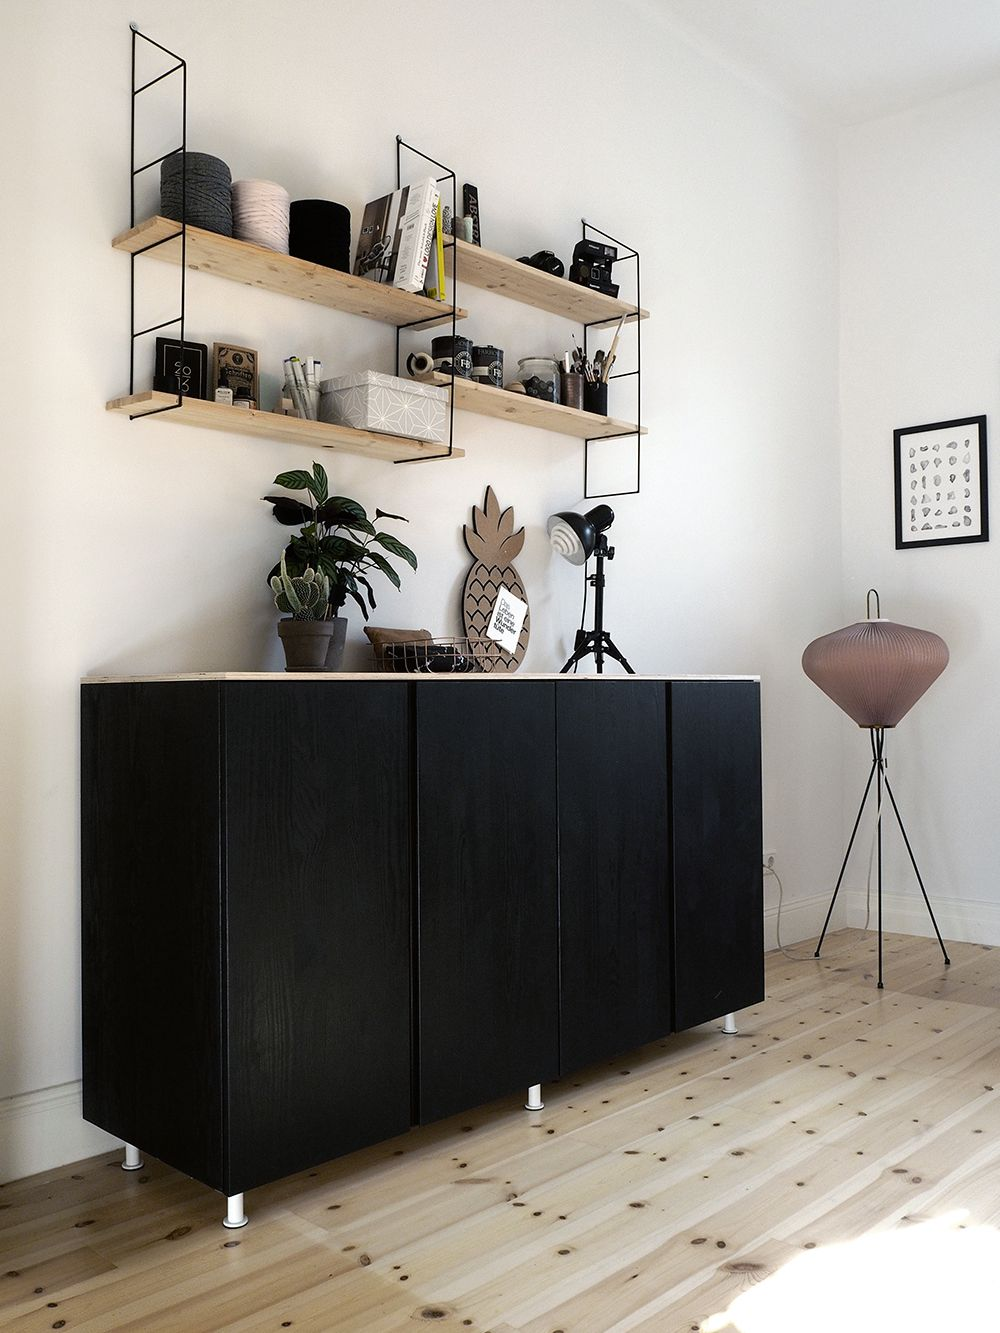 ikea hack wie du aus ivar schr nken ein cooles sideboard machst wohnzimmer einrichtung und. Black Bedroom Furniture Sets. Home Design Ideas